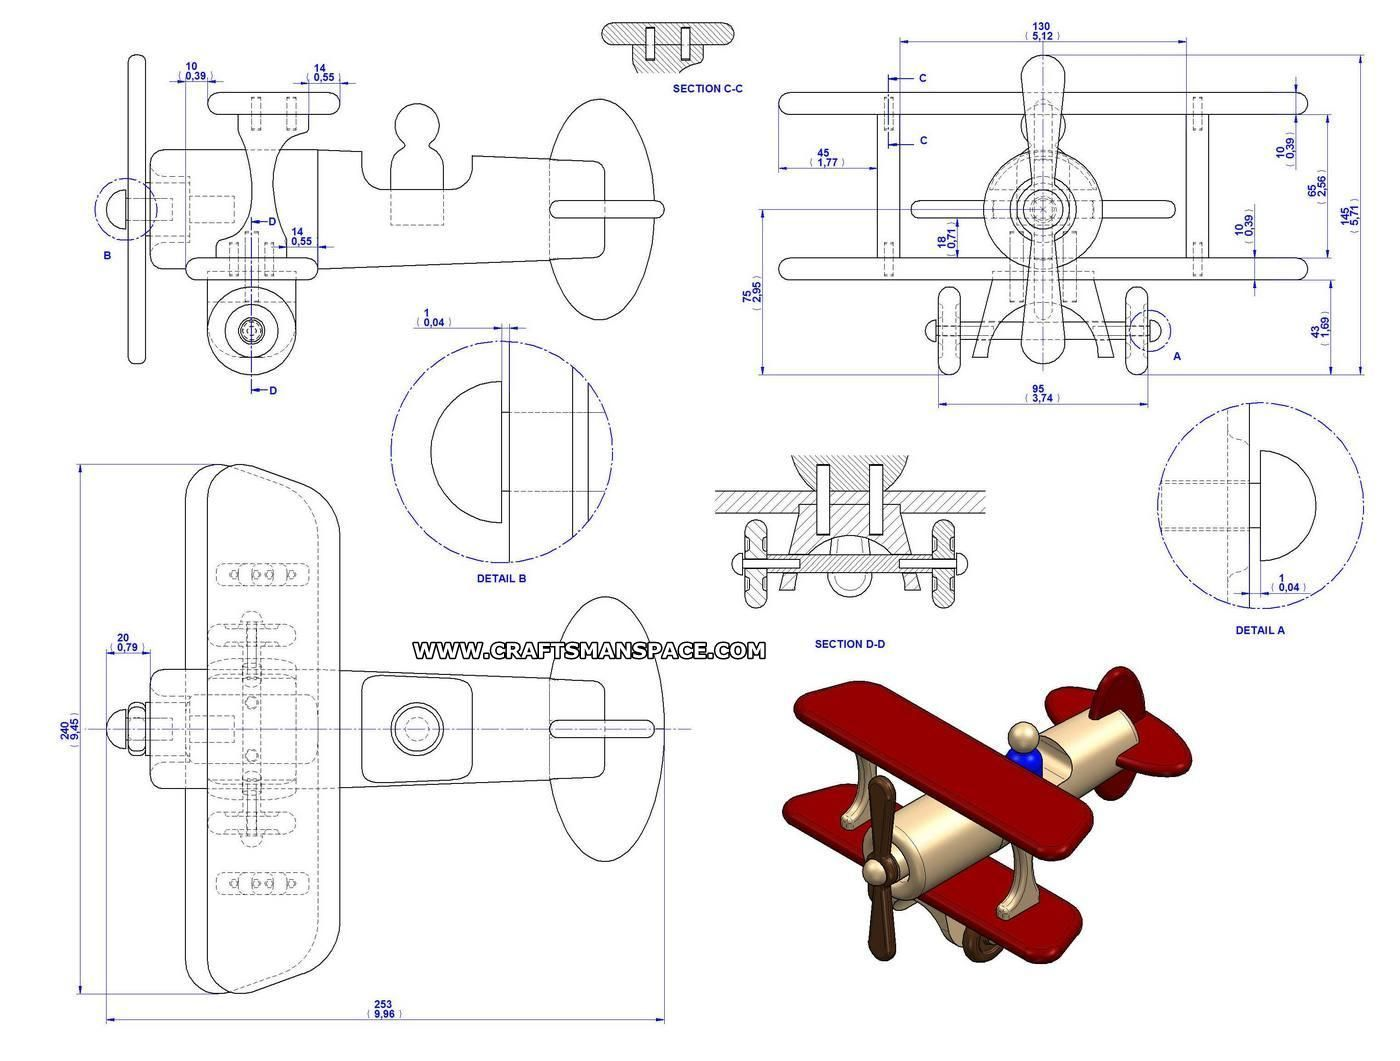 image result for free wooden toy plans | airplanes | wood